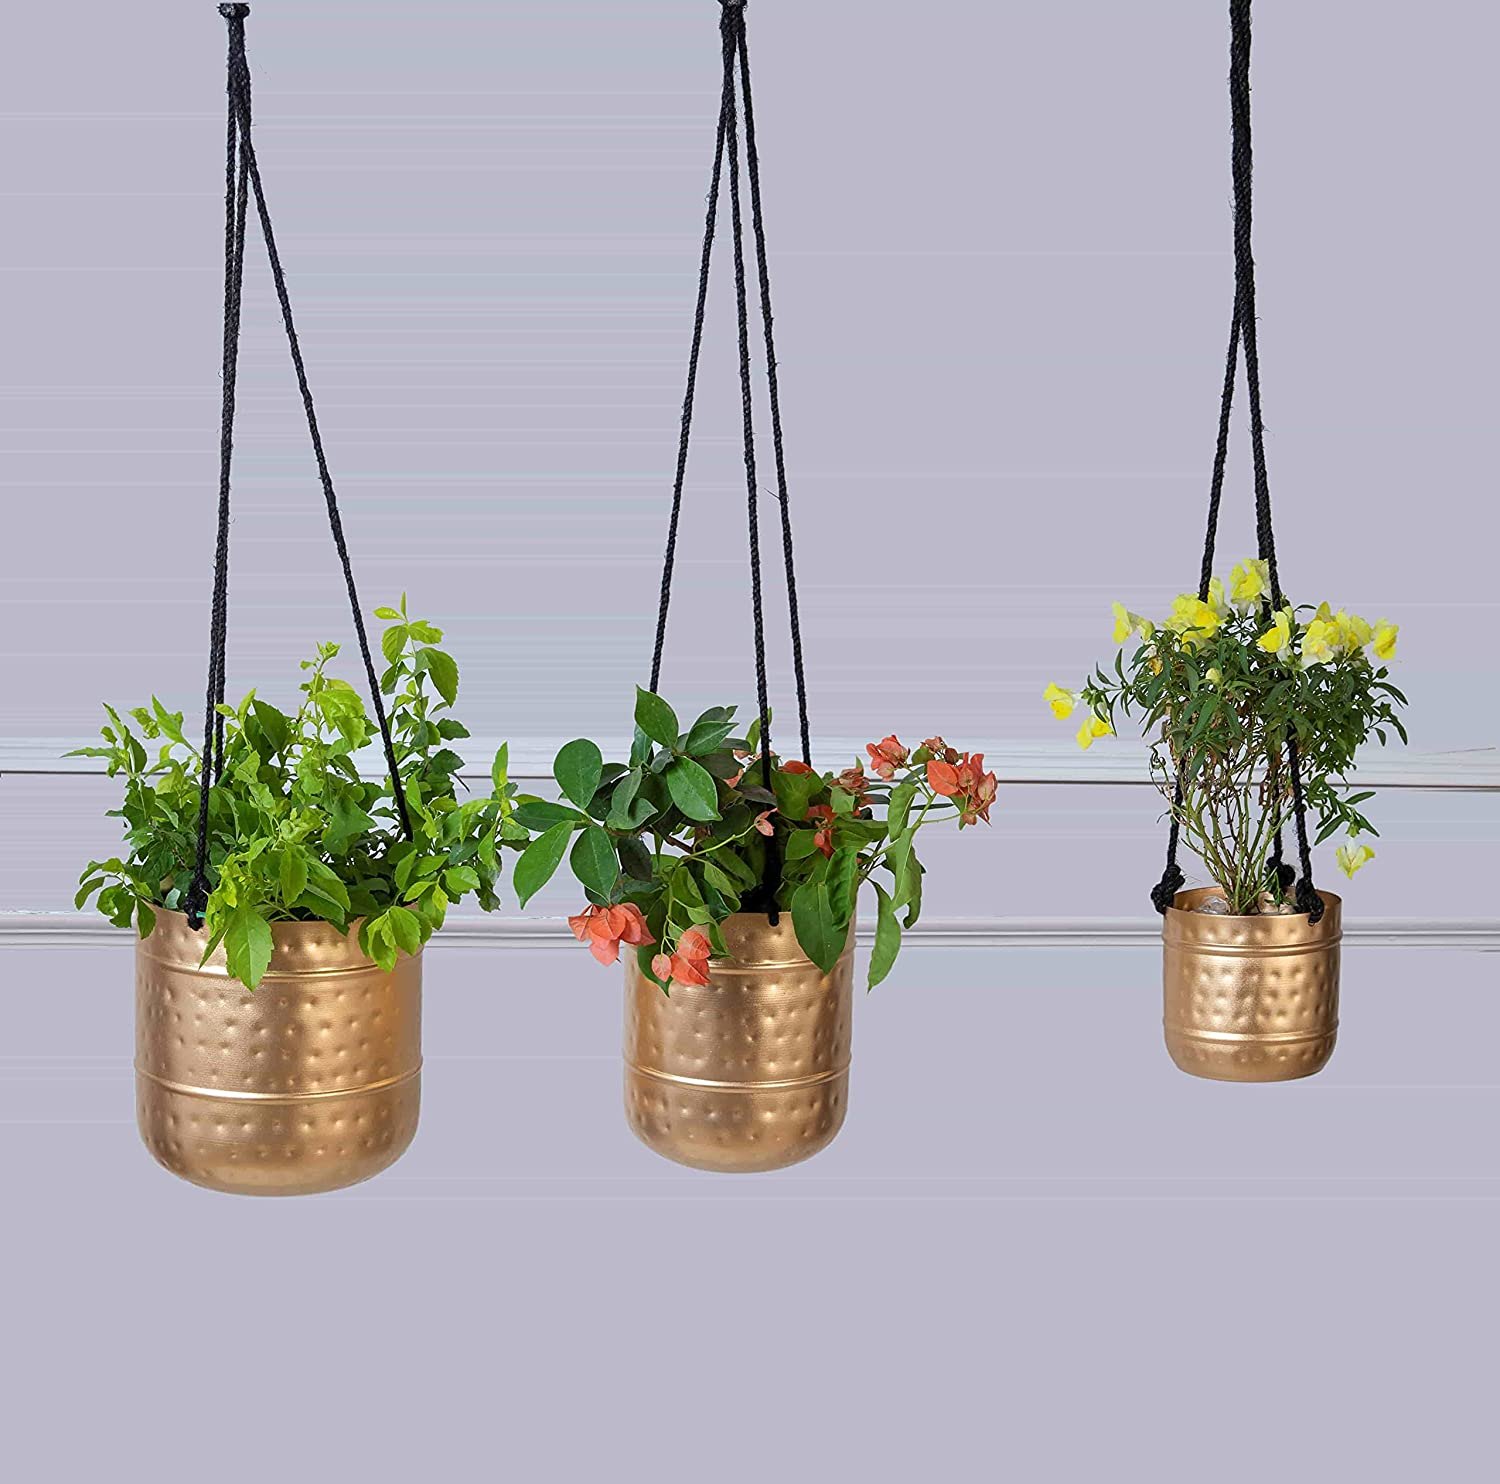 100% quality warranty! MytriDesigns Super sale Hammered Planter Pots Golden with R Antique Finish